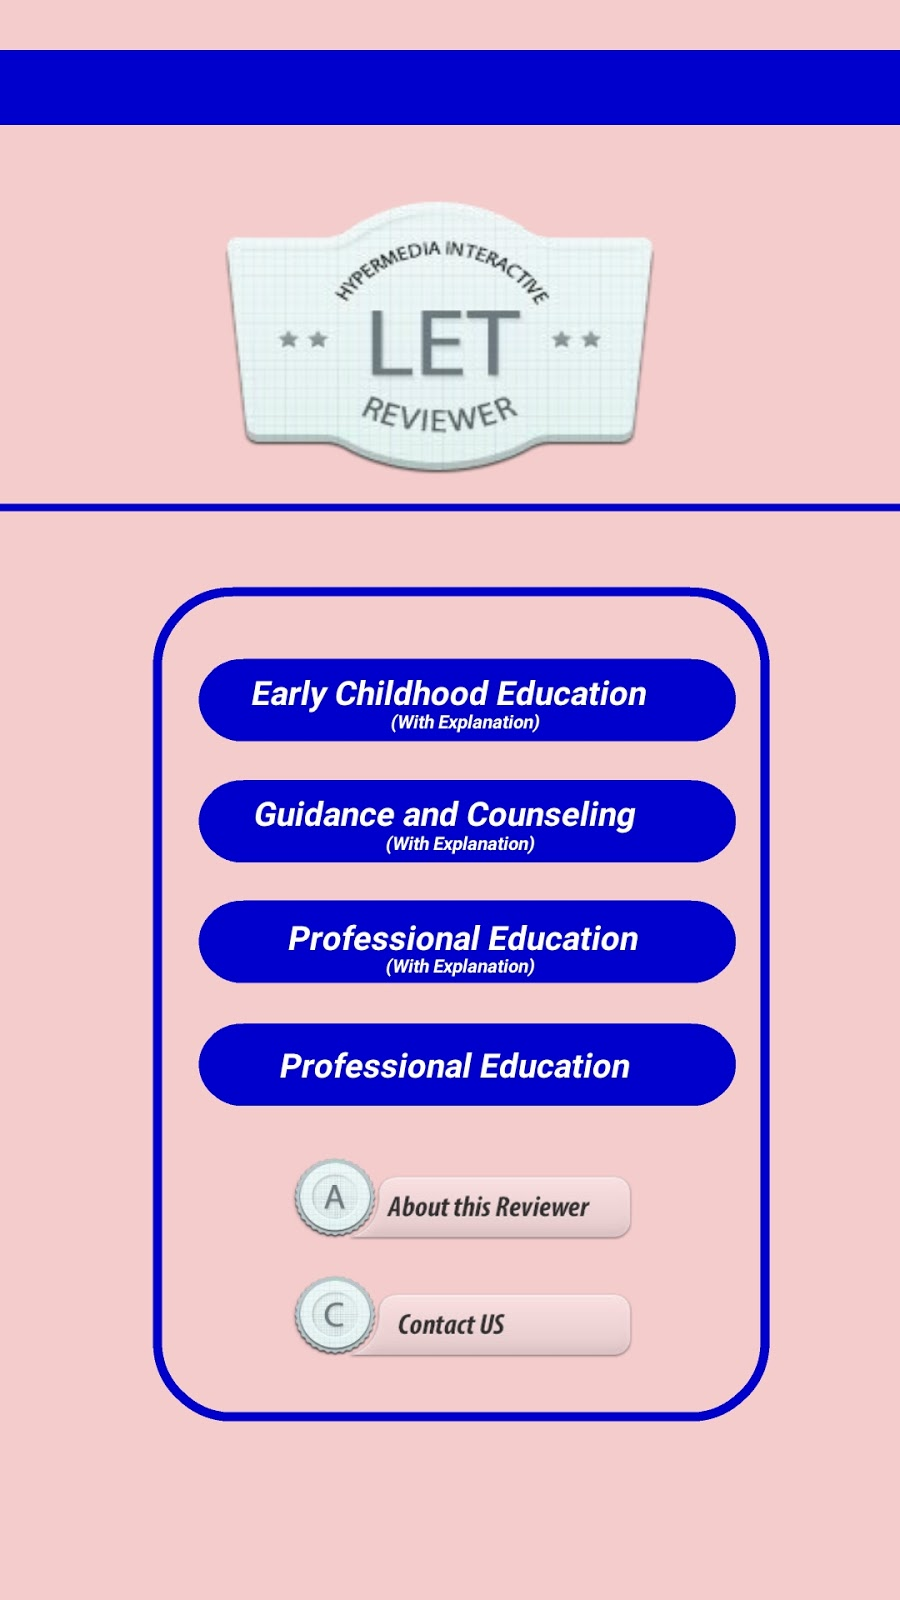 Licensure Examination For Teachers Let Professional Education Reviewer Set